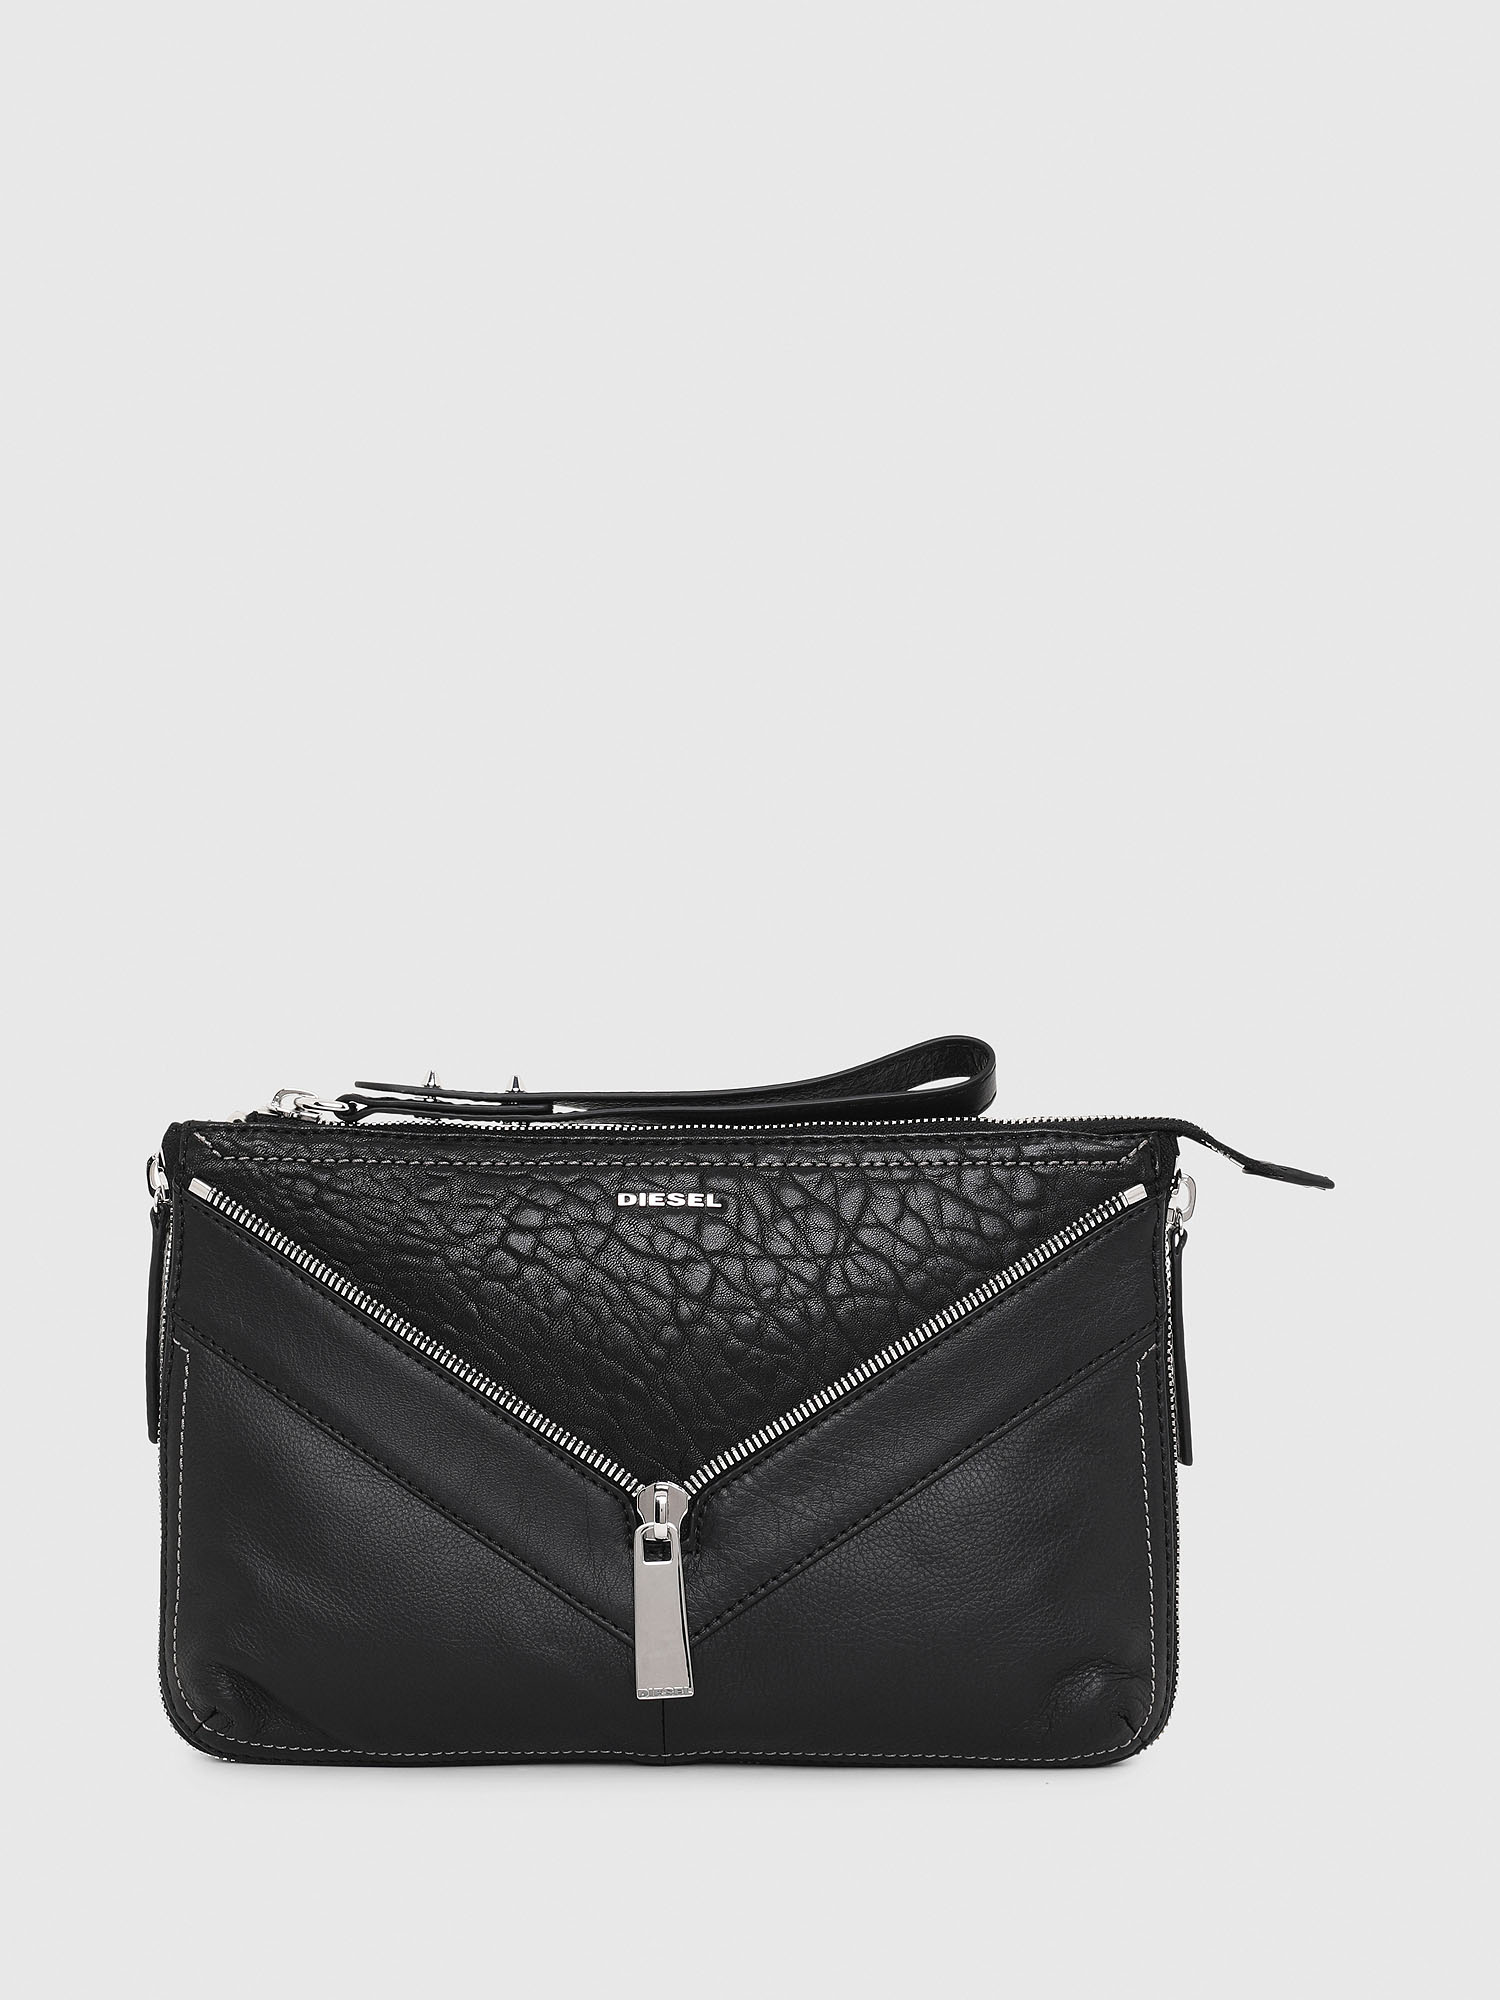 Diesel - LE-LITTSYY,  - Clutches - Image 1